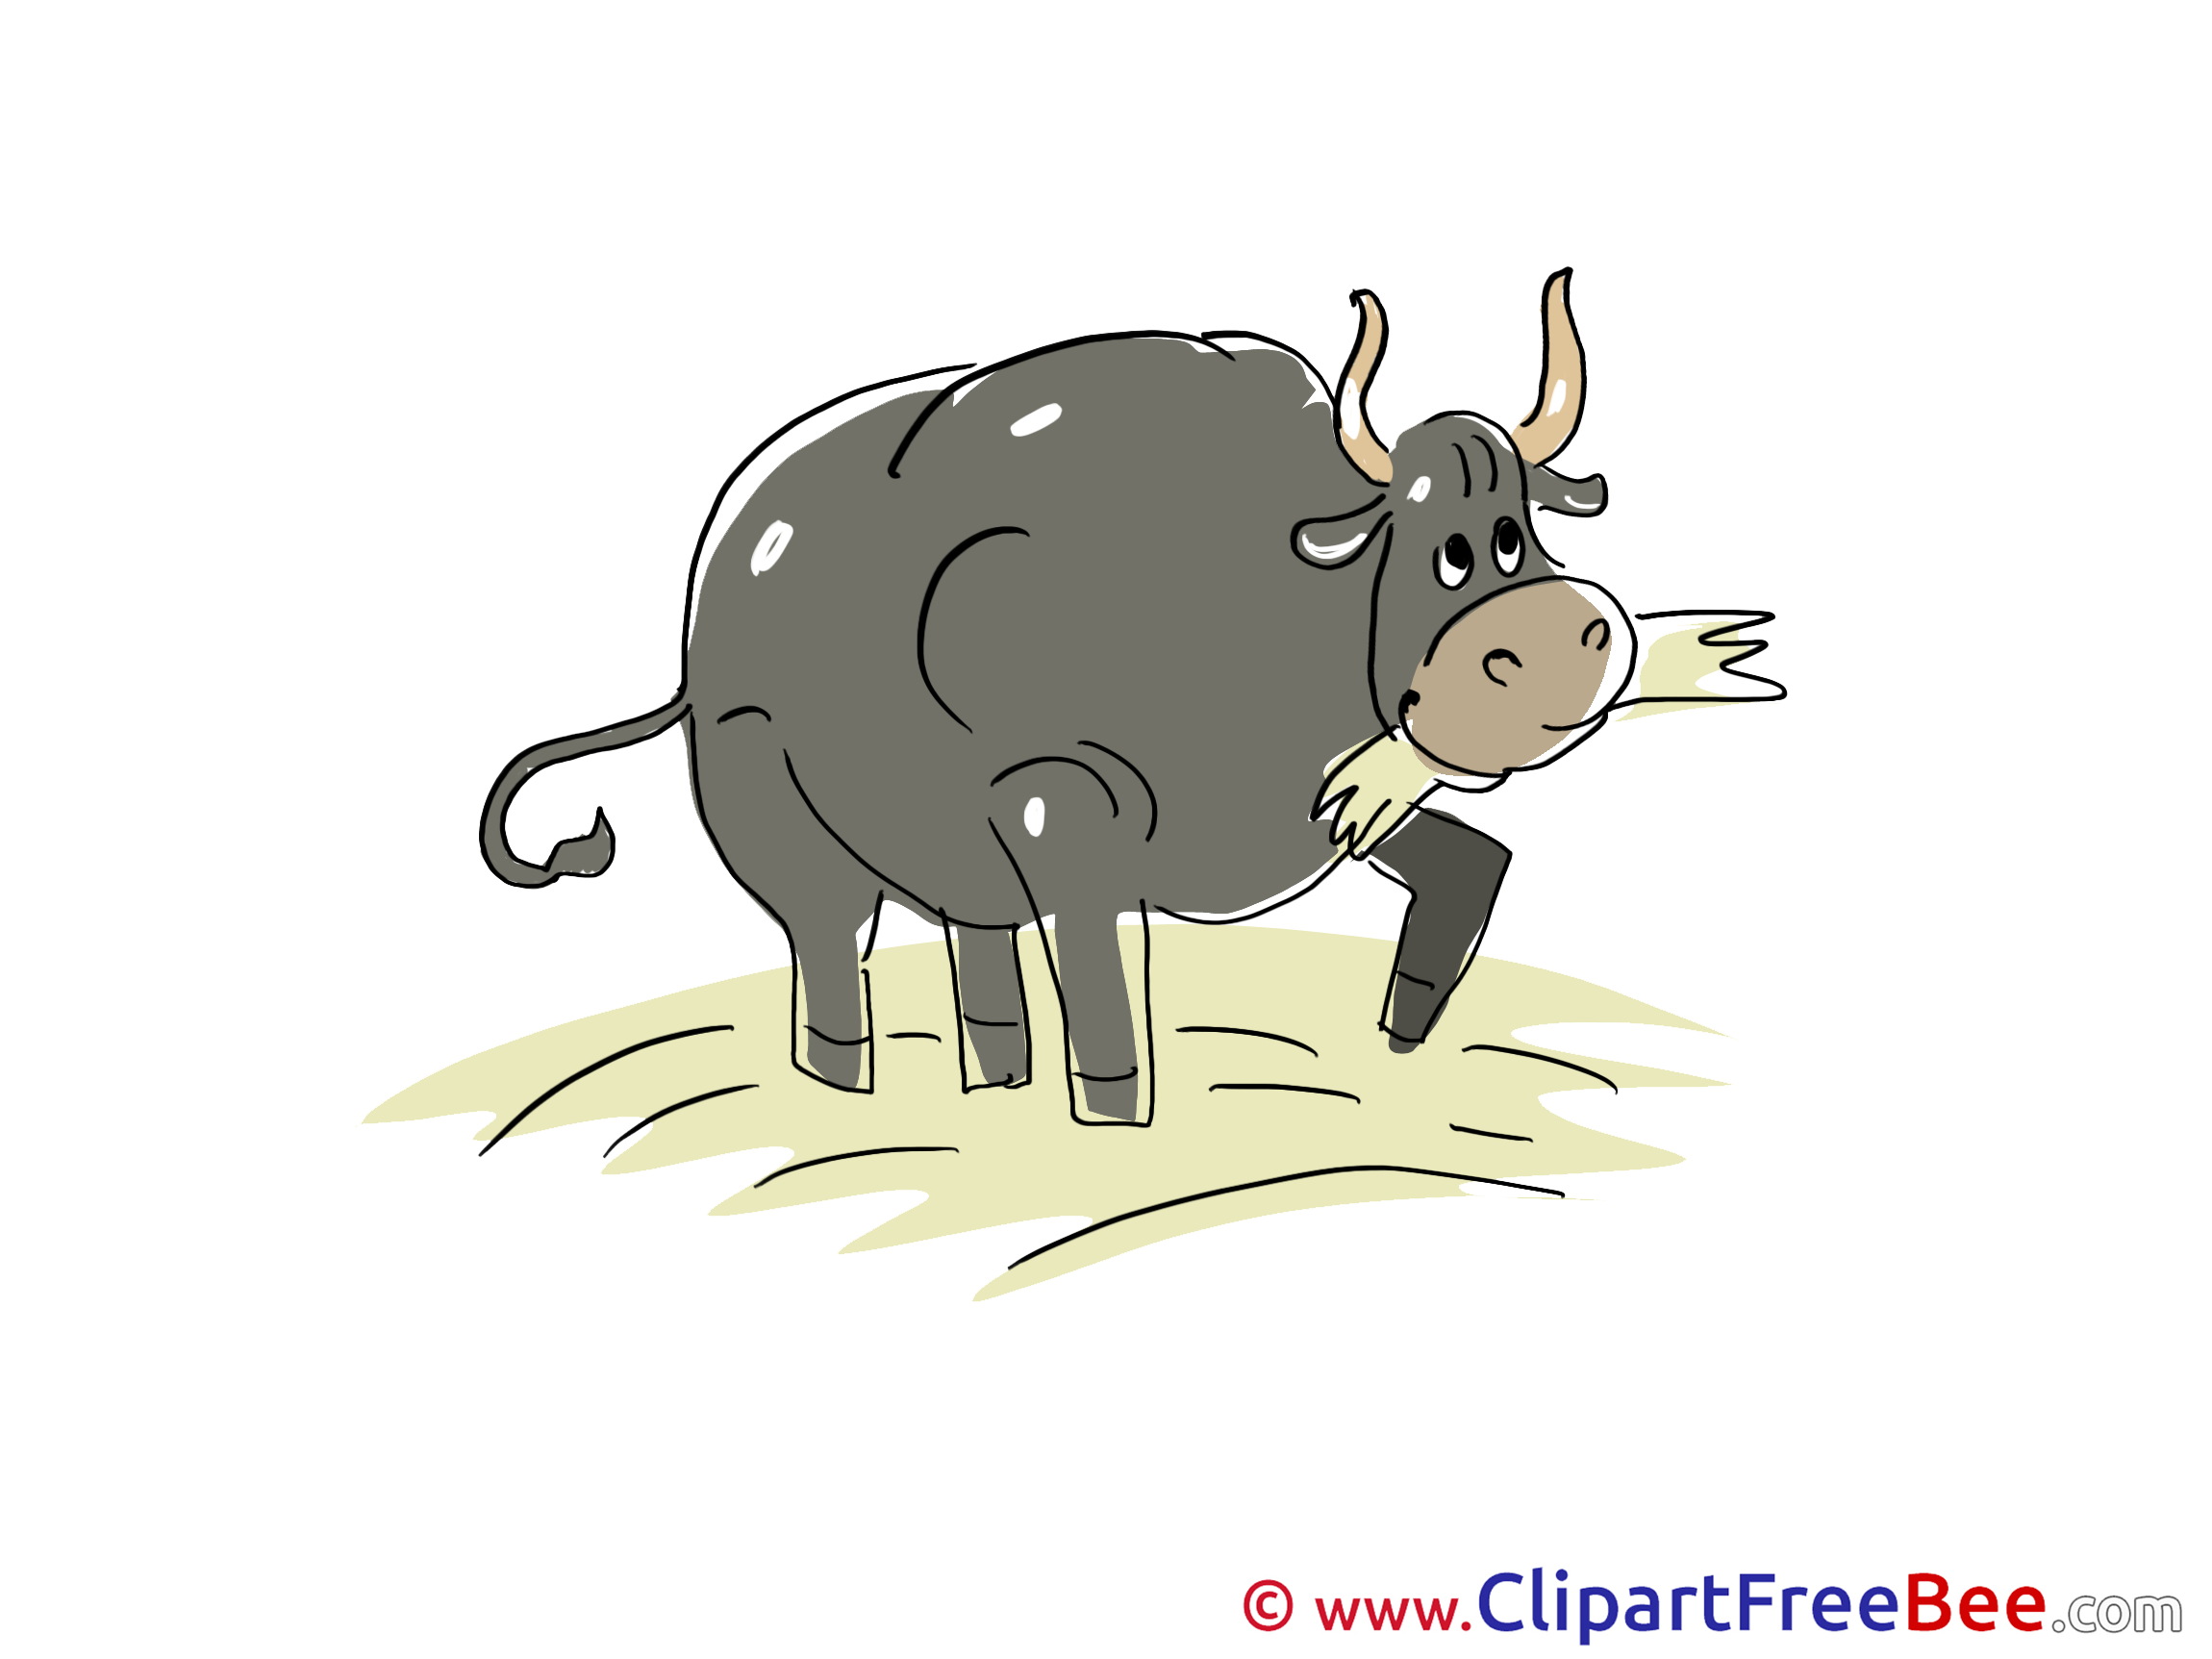 Hay Bull download Clip Art for free